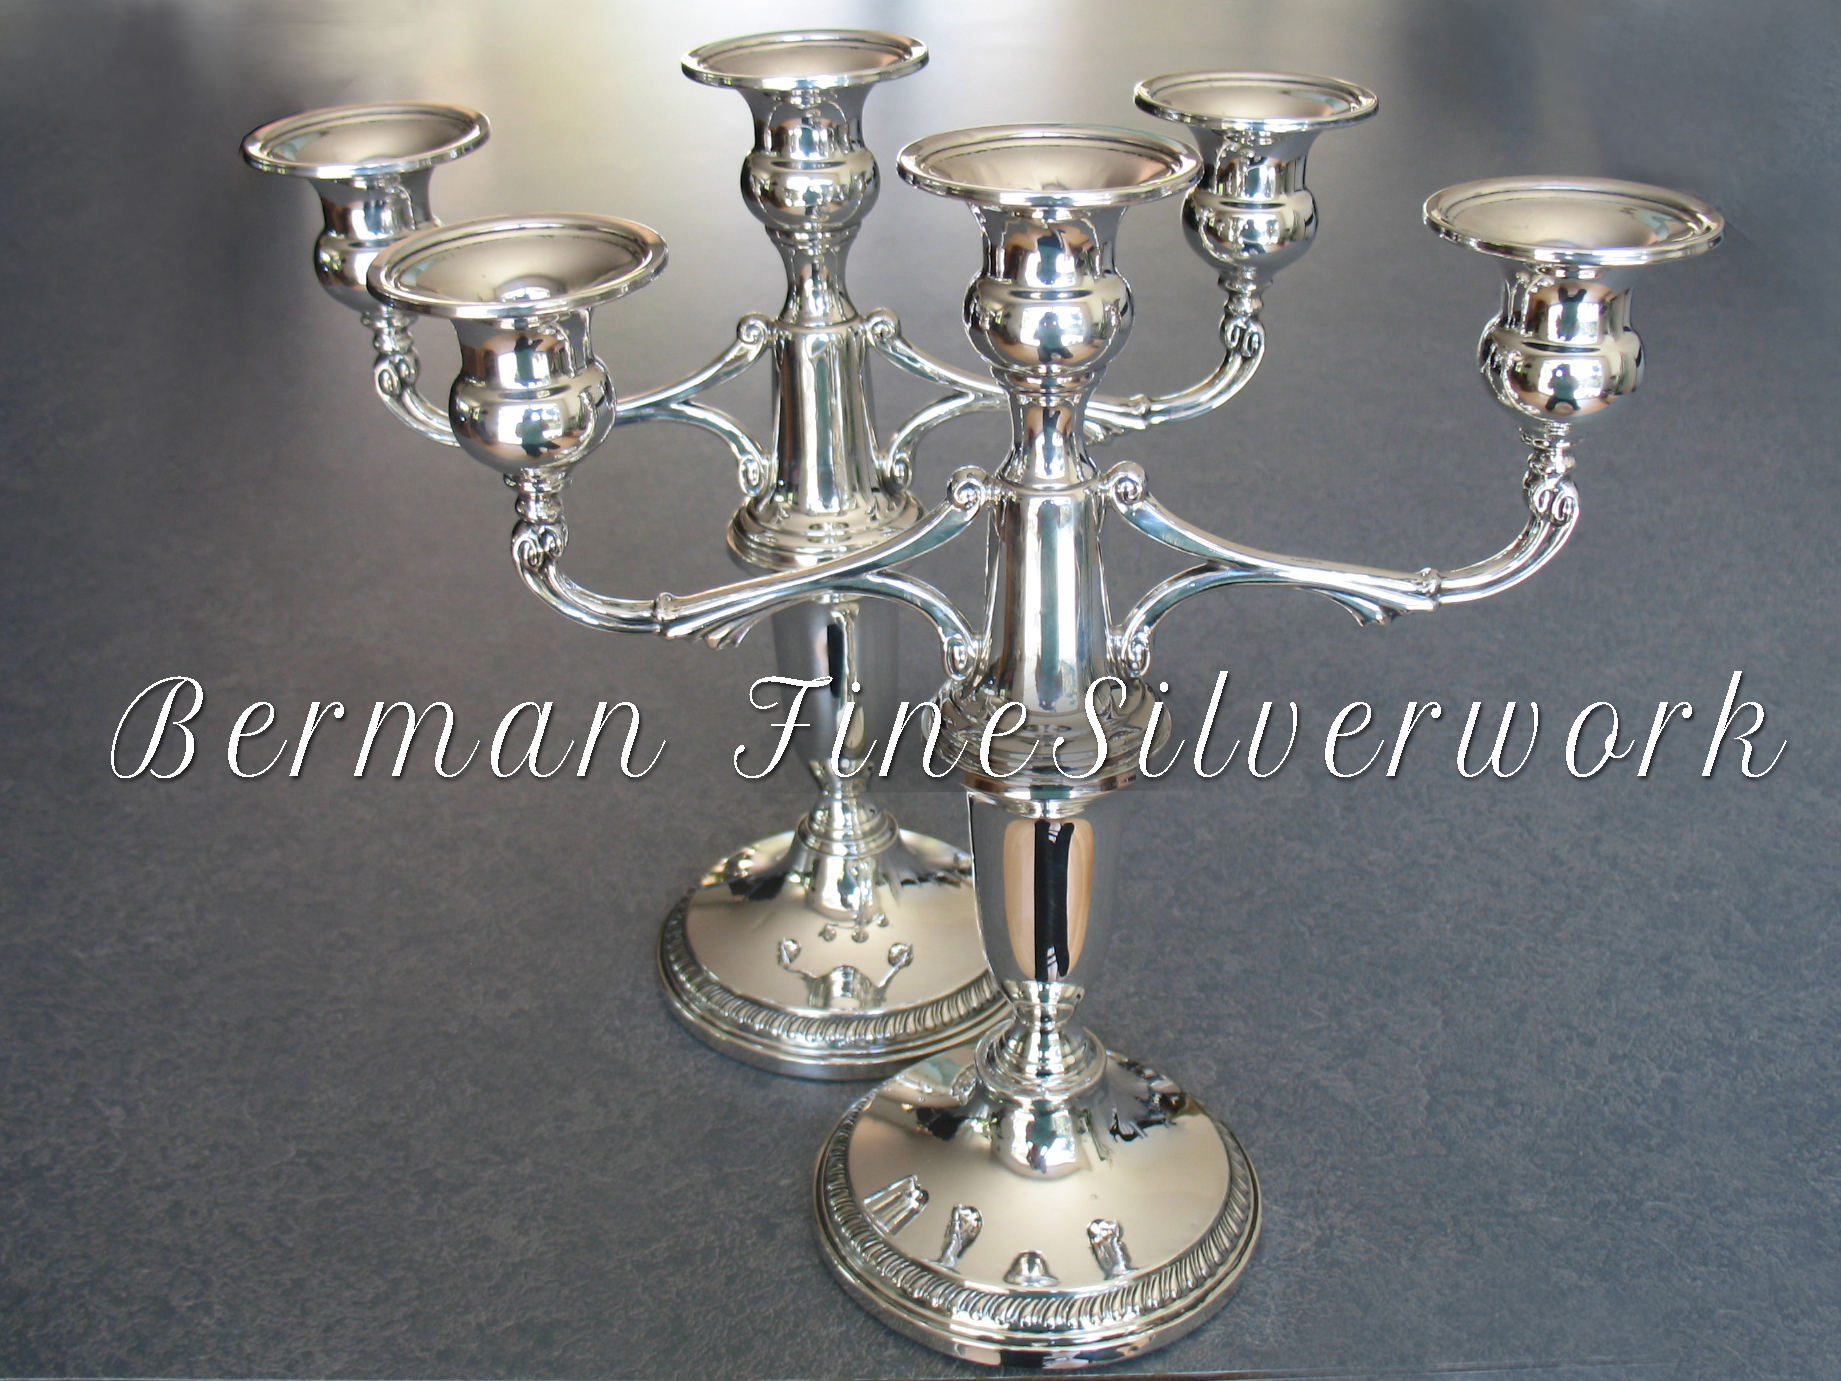 Berman Fine Silvework  silver repair and restoration